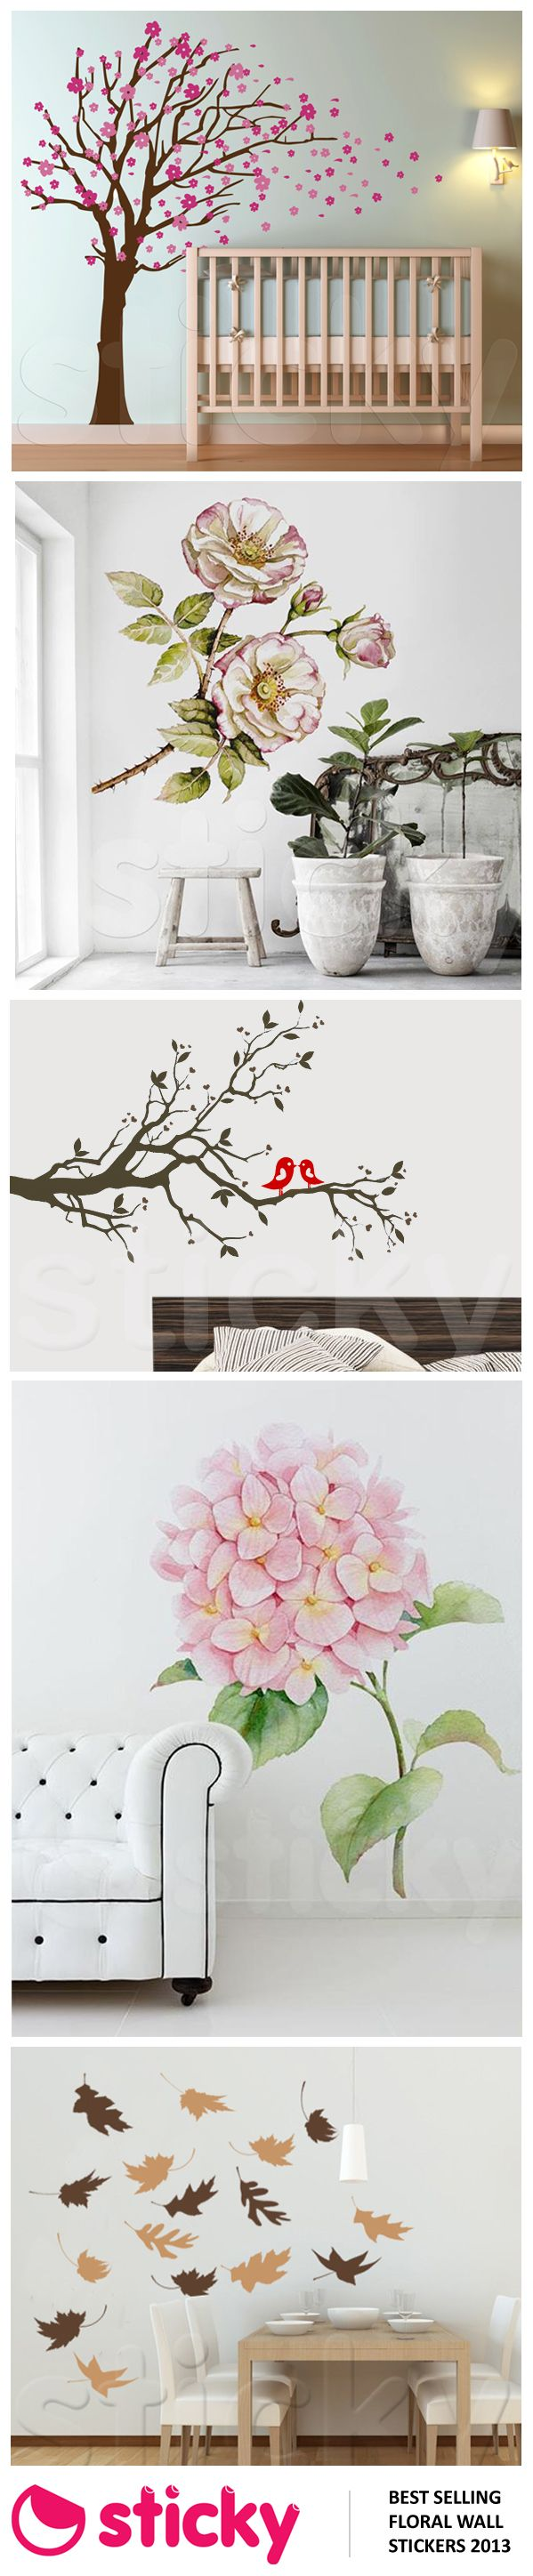 STICKY - Our best selling FLORAL wall stickers for 2013 based on sales!